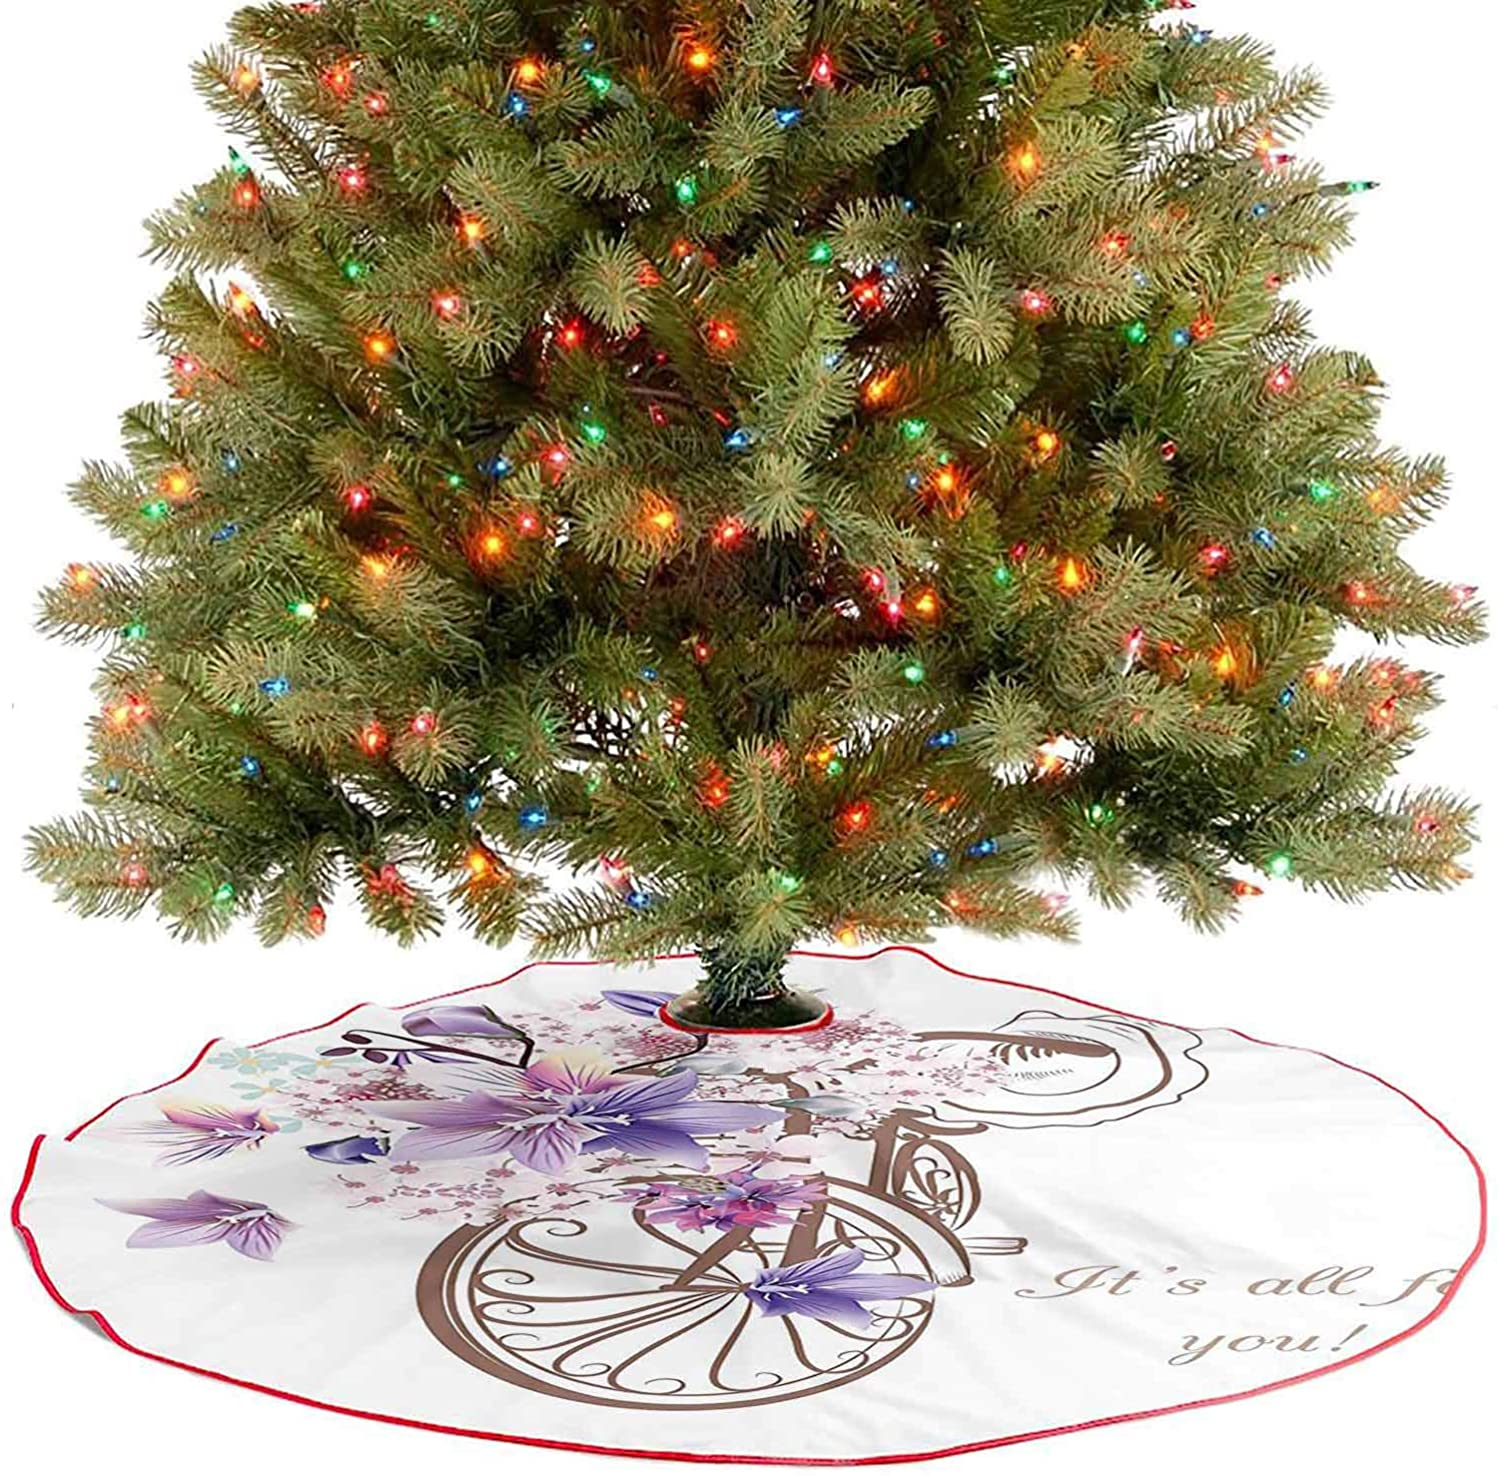 Adorise Tree Skirt with Basket of Flowers Vintage Spring Time Artwork Image Umber Lavander and Light Holiday Decor Ornaments for Christmas Tree Holiday DéCor - 30 Inch